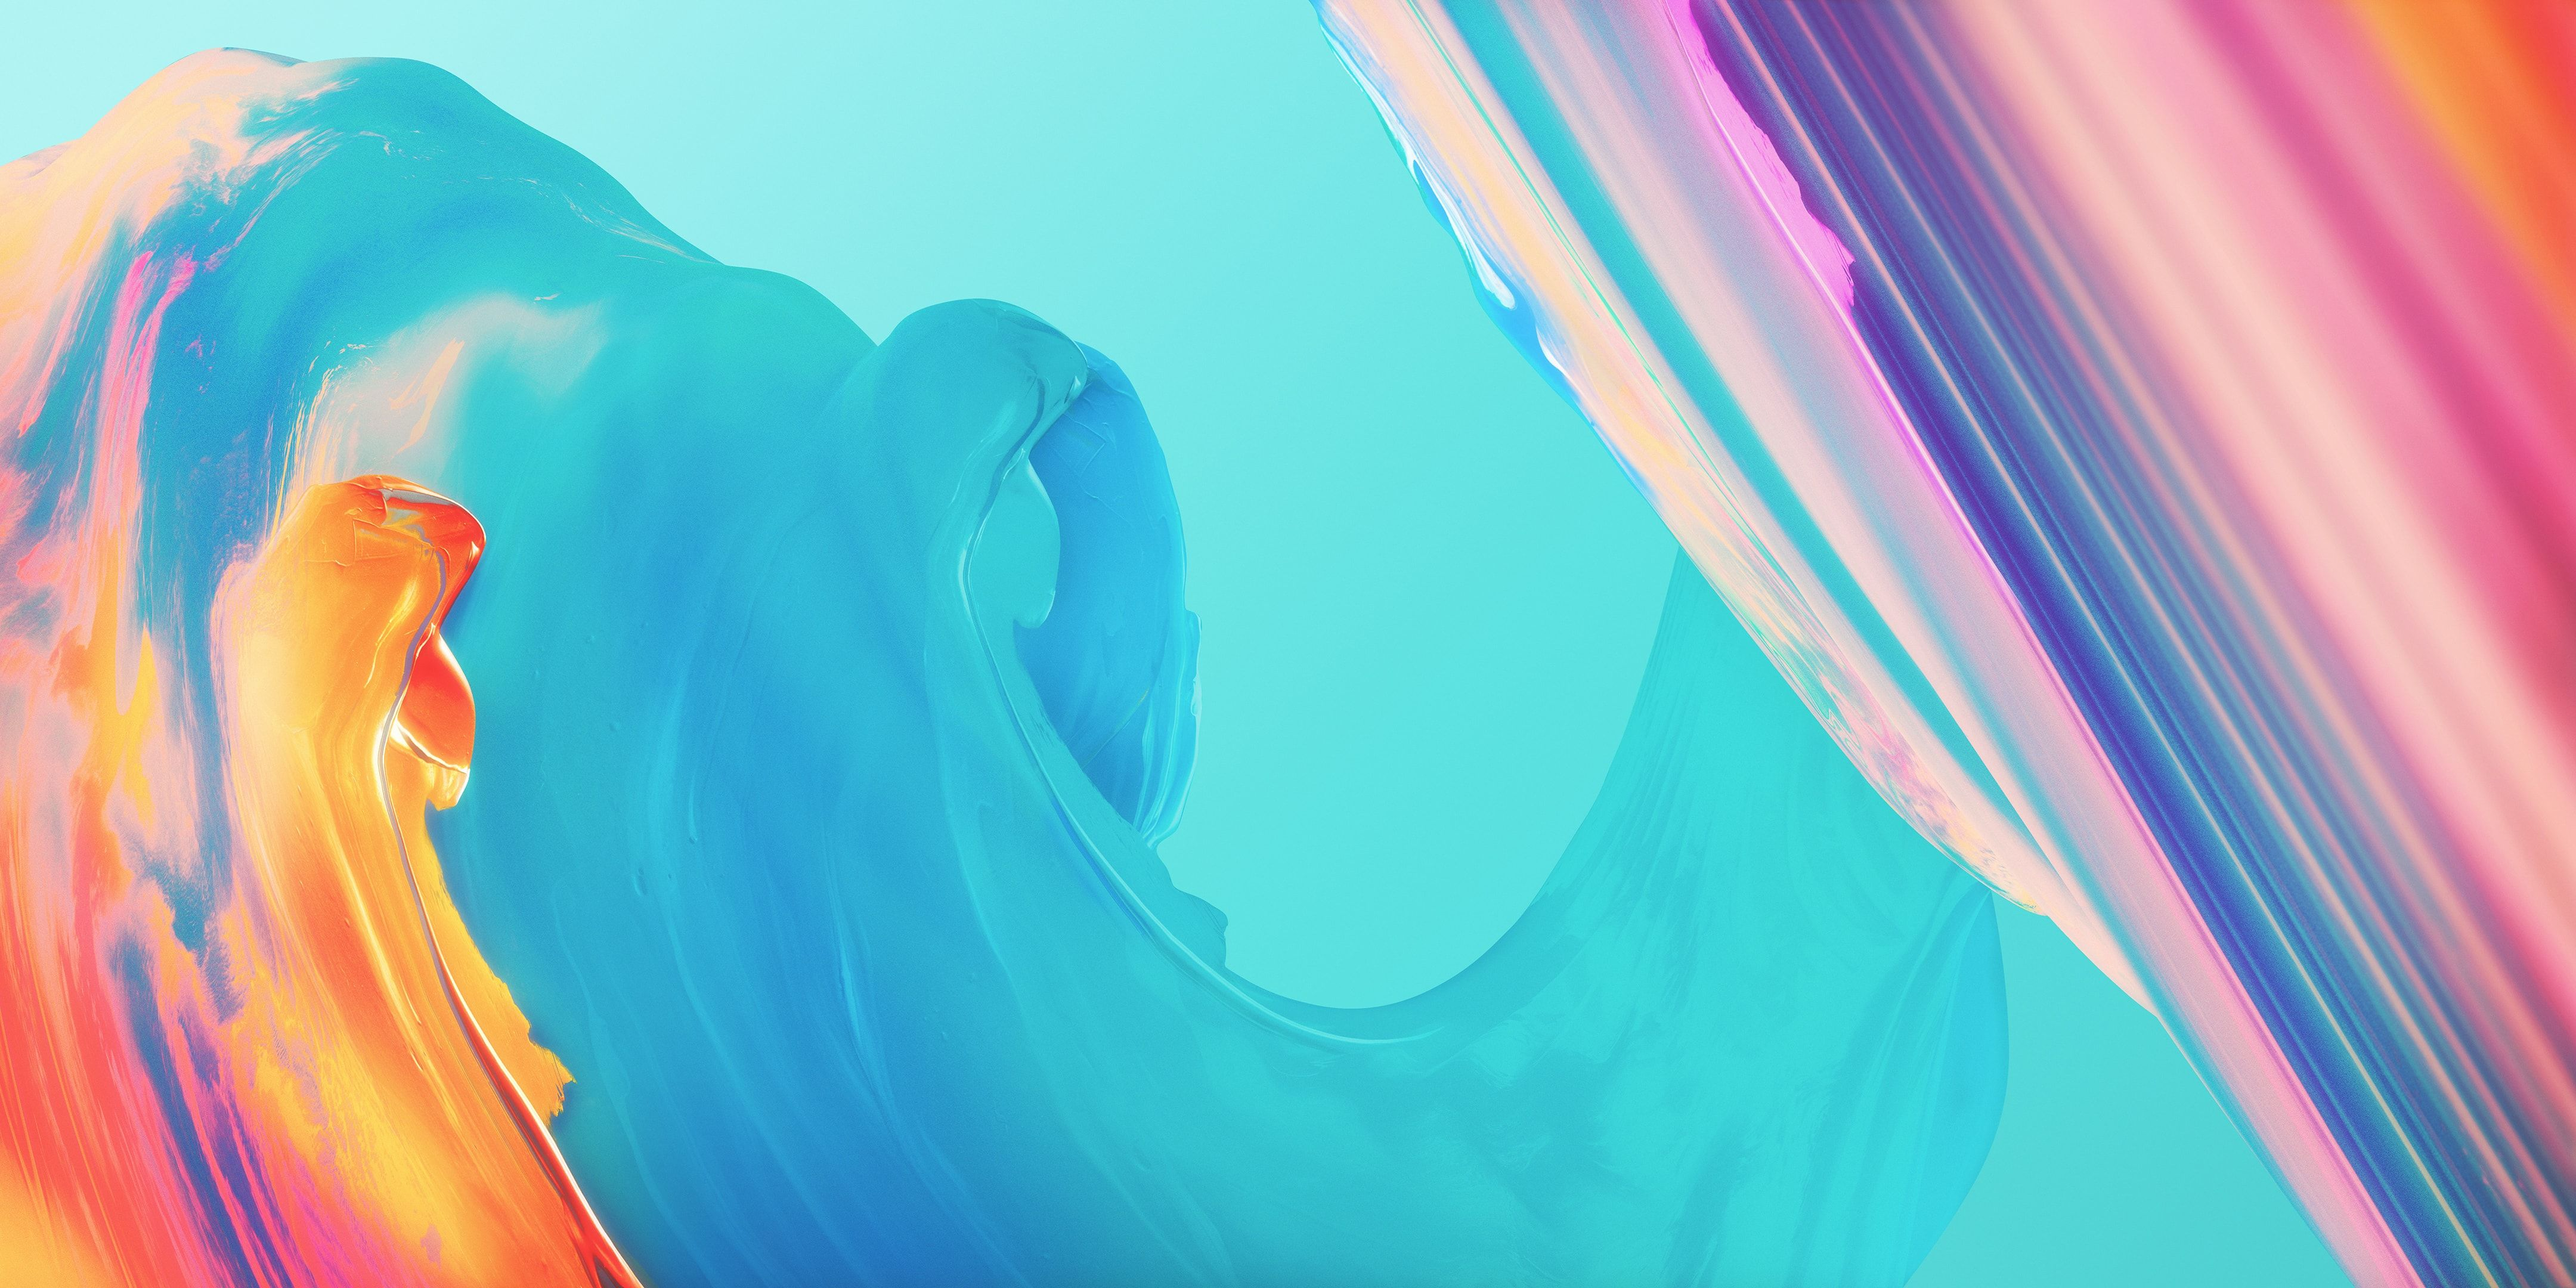 Paint Colorful Waves Oneplus 4k Abstract Painting Wallpaper